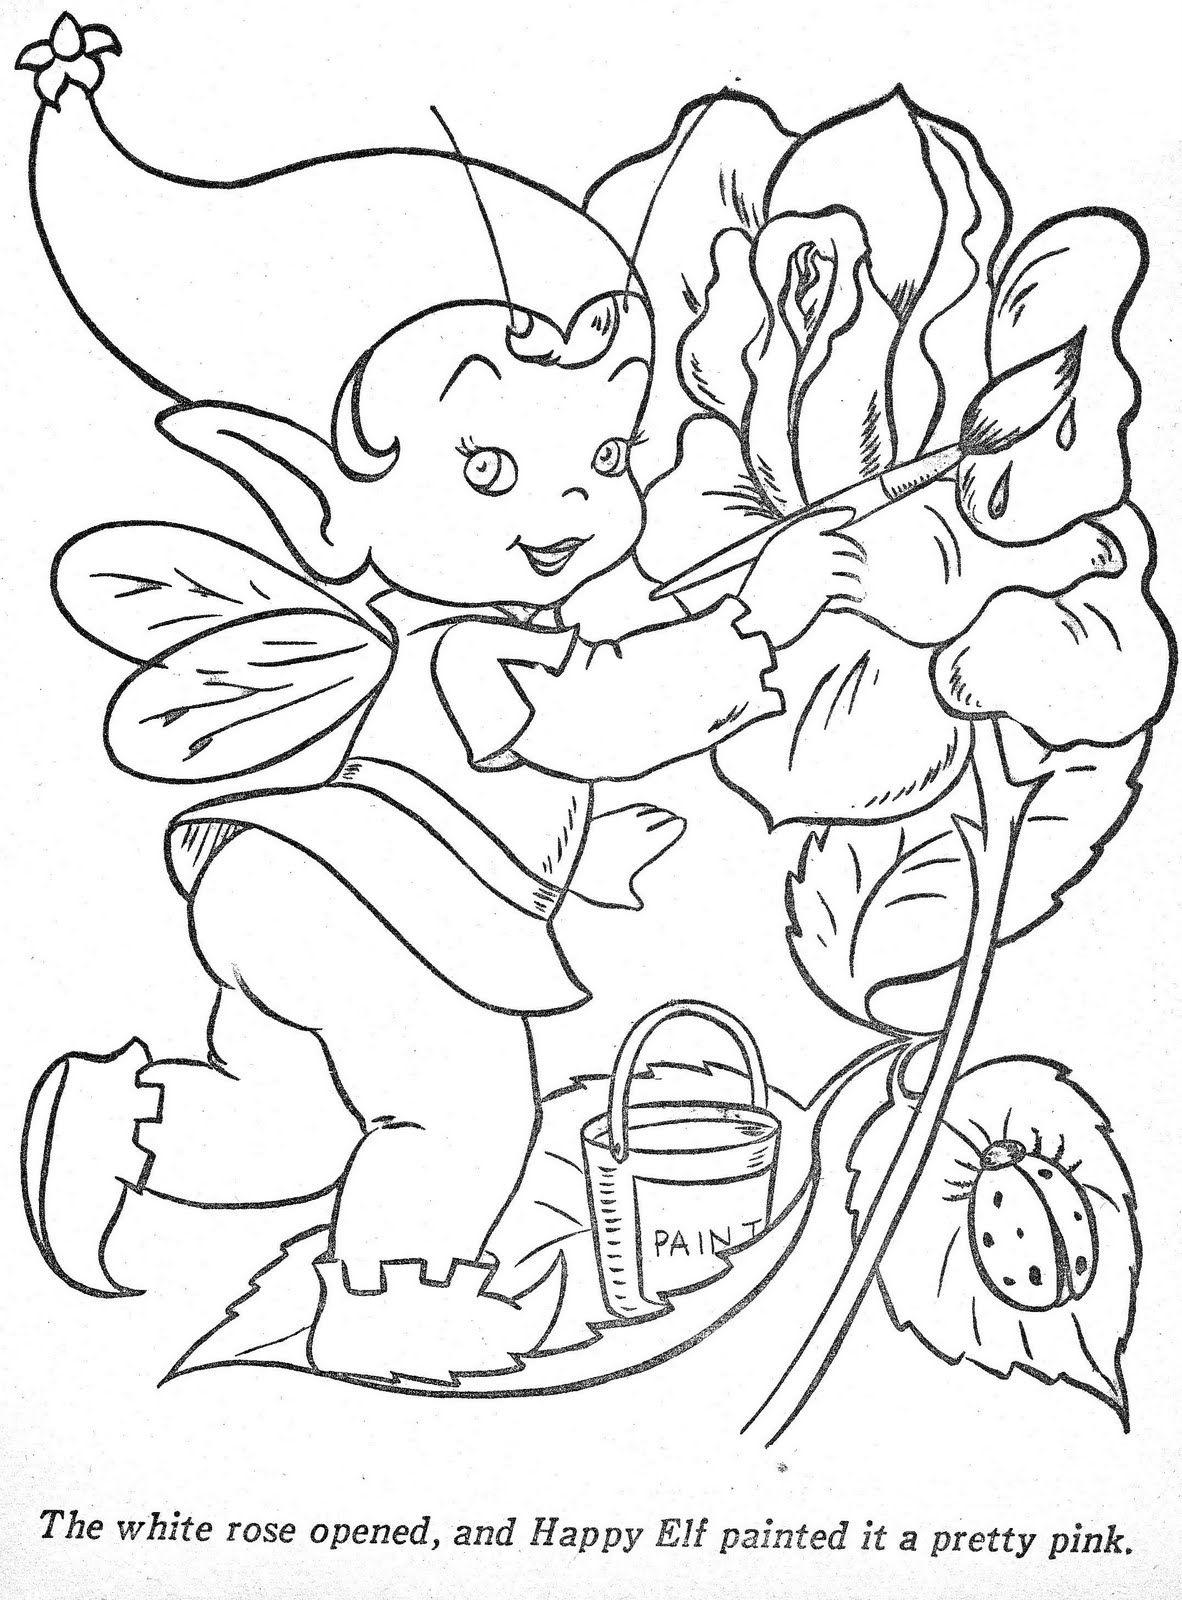 Coloring Pages: Happy Elf | elves & fairies | Pinterest | Elves ...